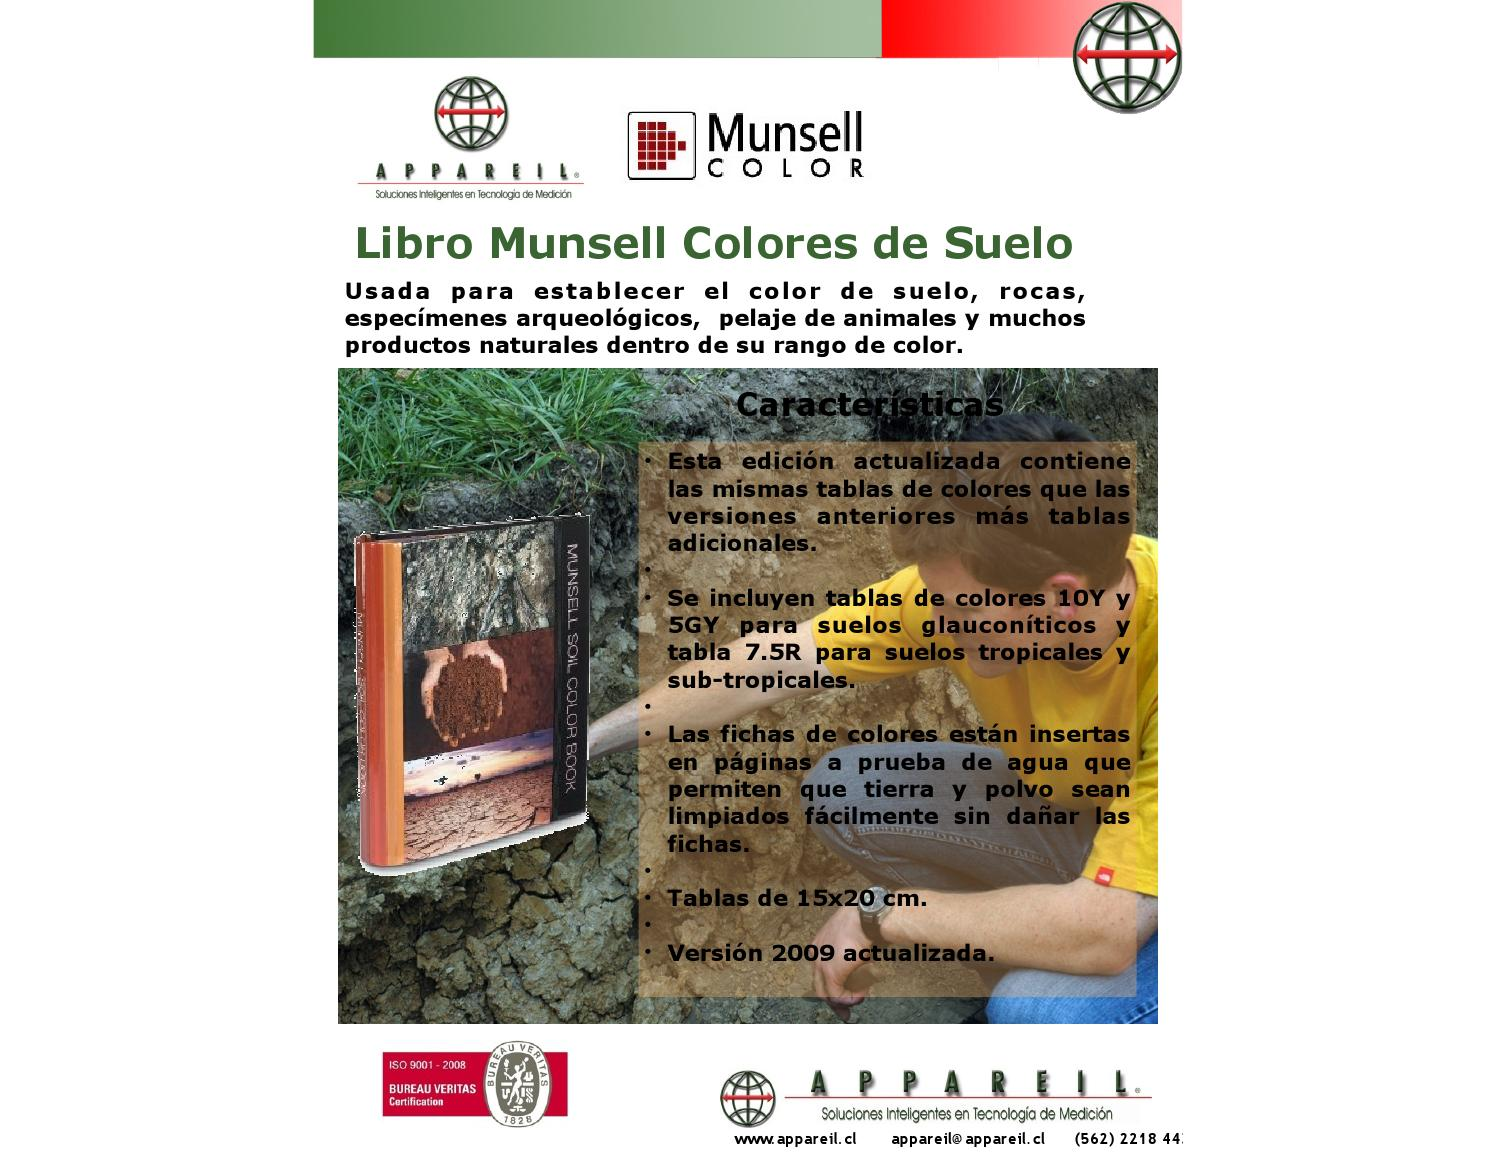 munsell-color-libro-colores-de-suelo-munsell by Juan Francisco Lobos ...